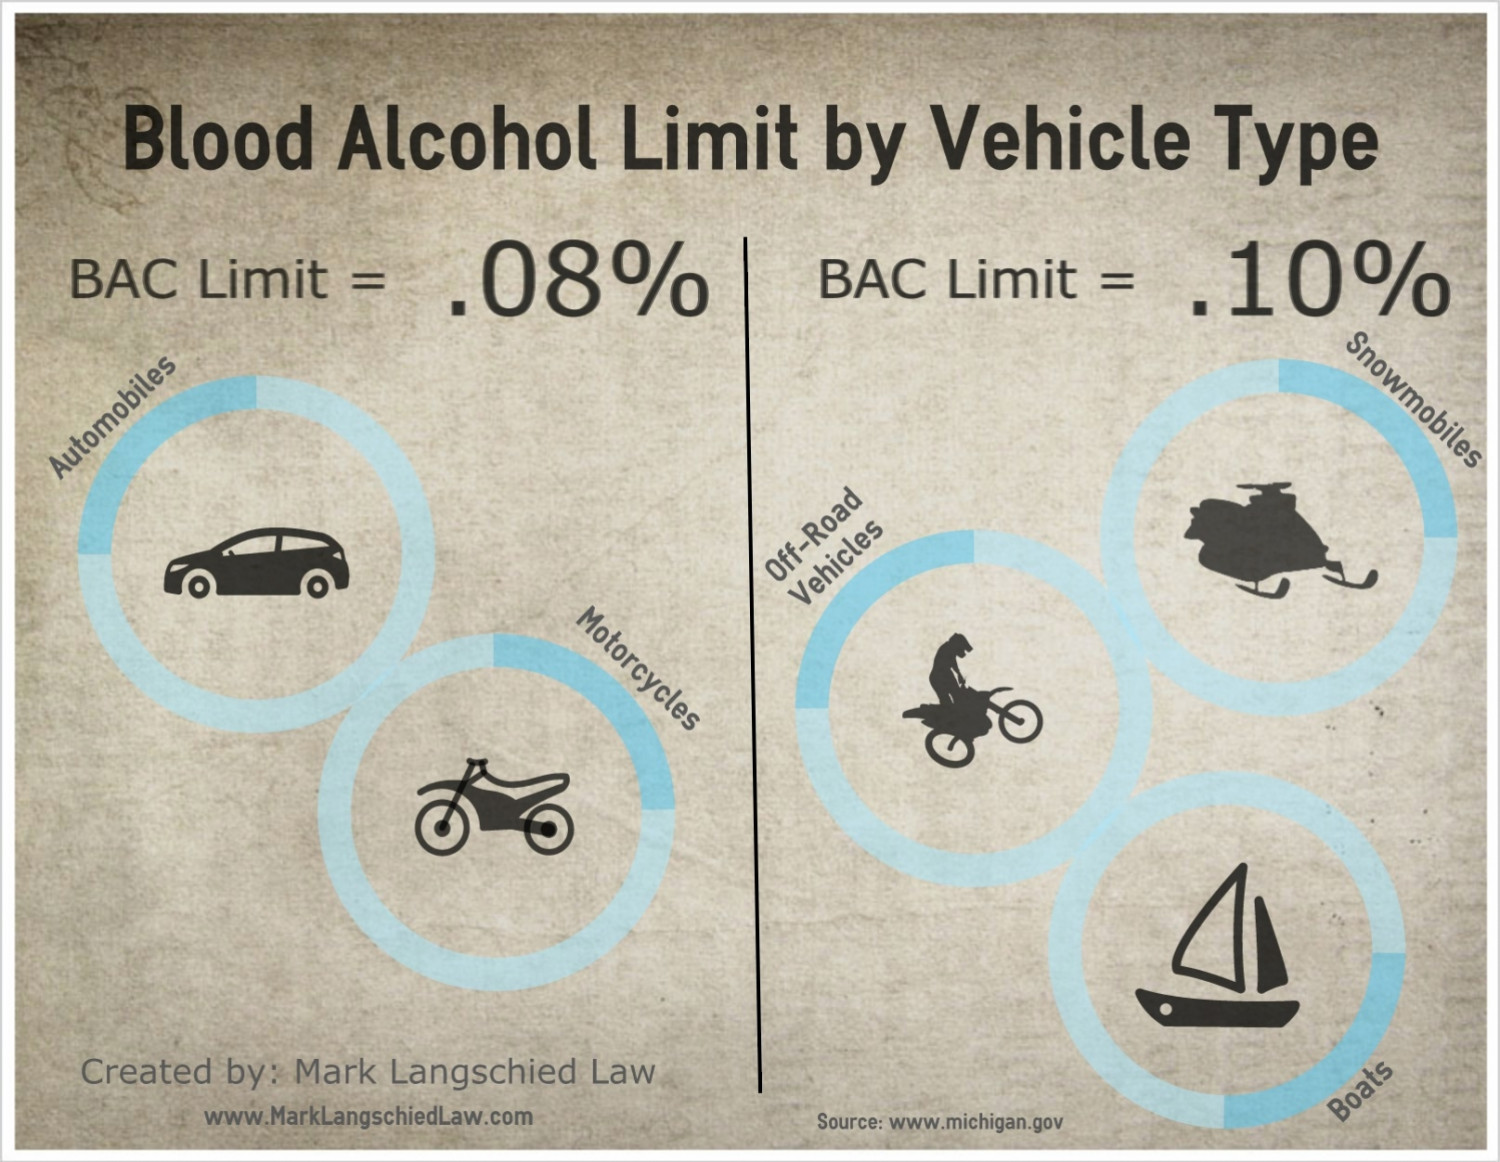 Blood Alcohol Limit by Vehicle Type Infographic